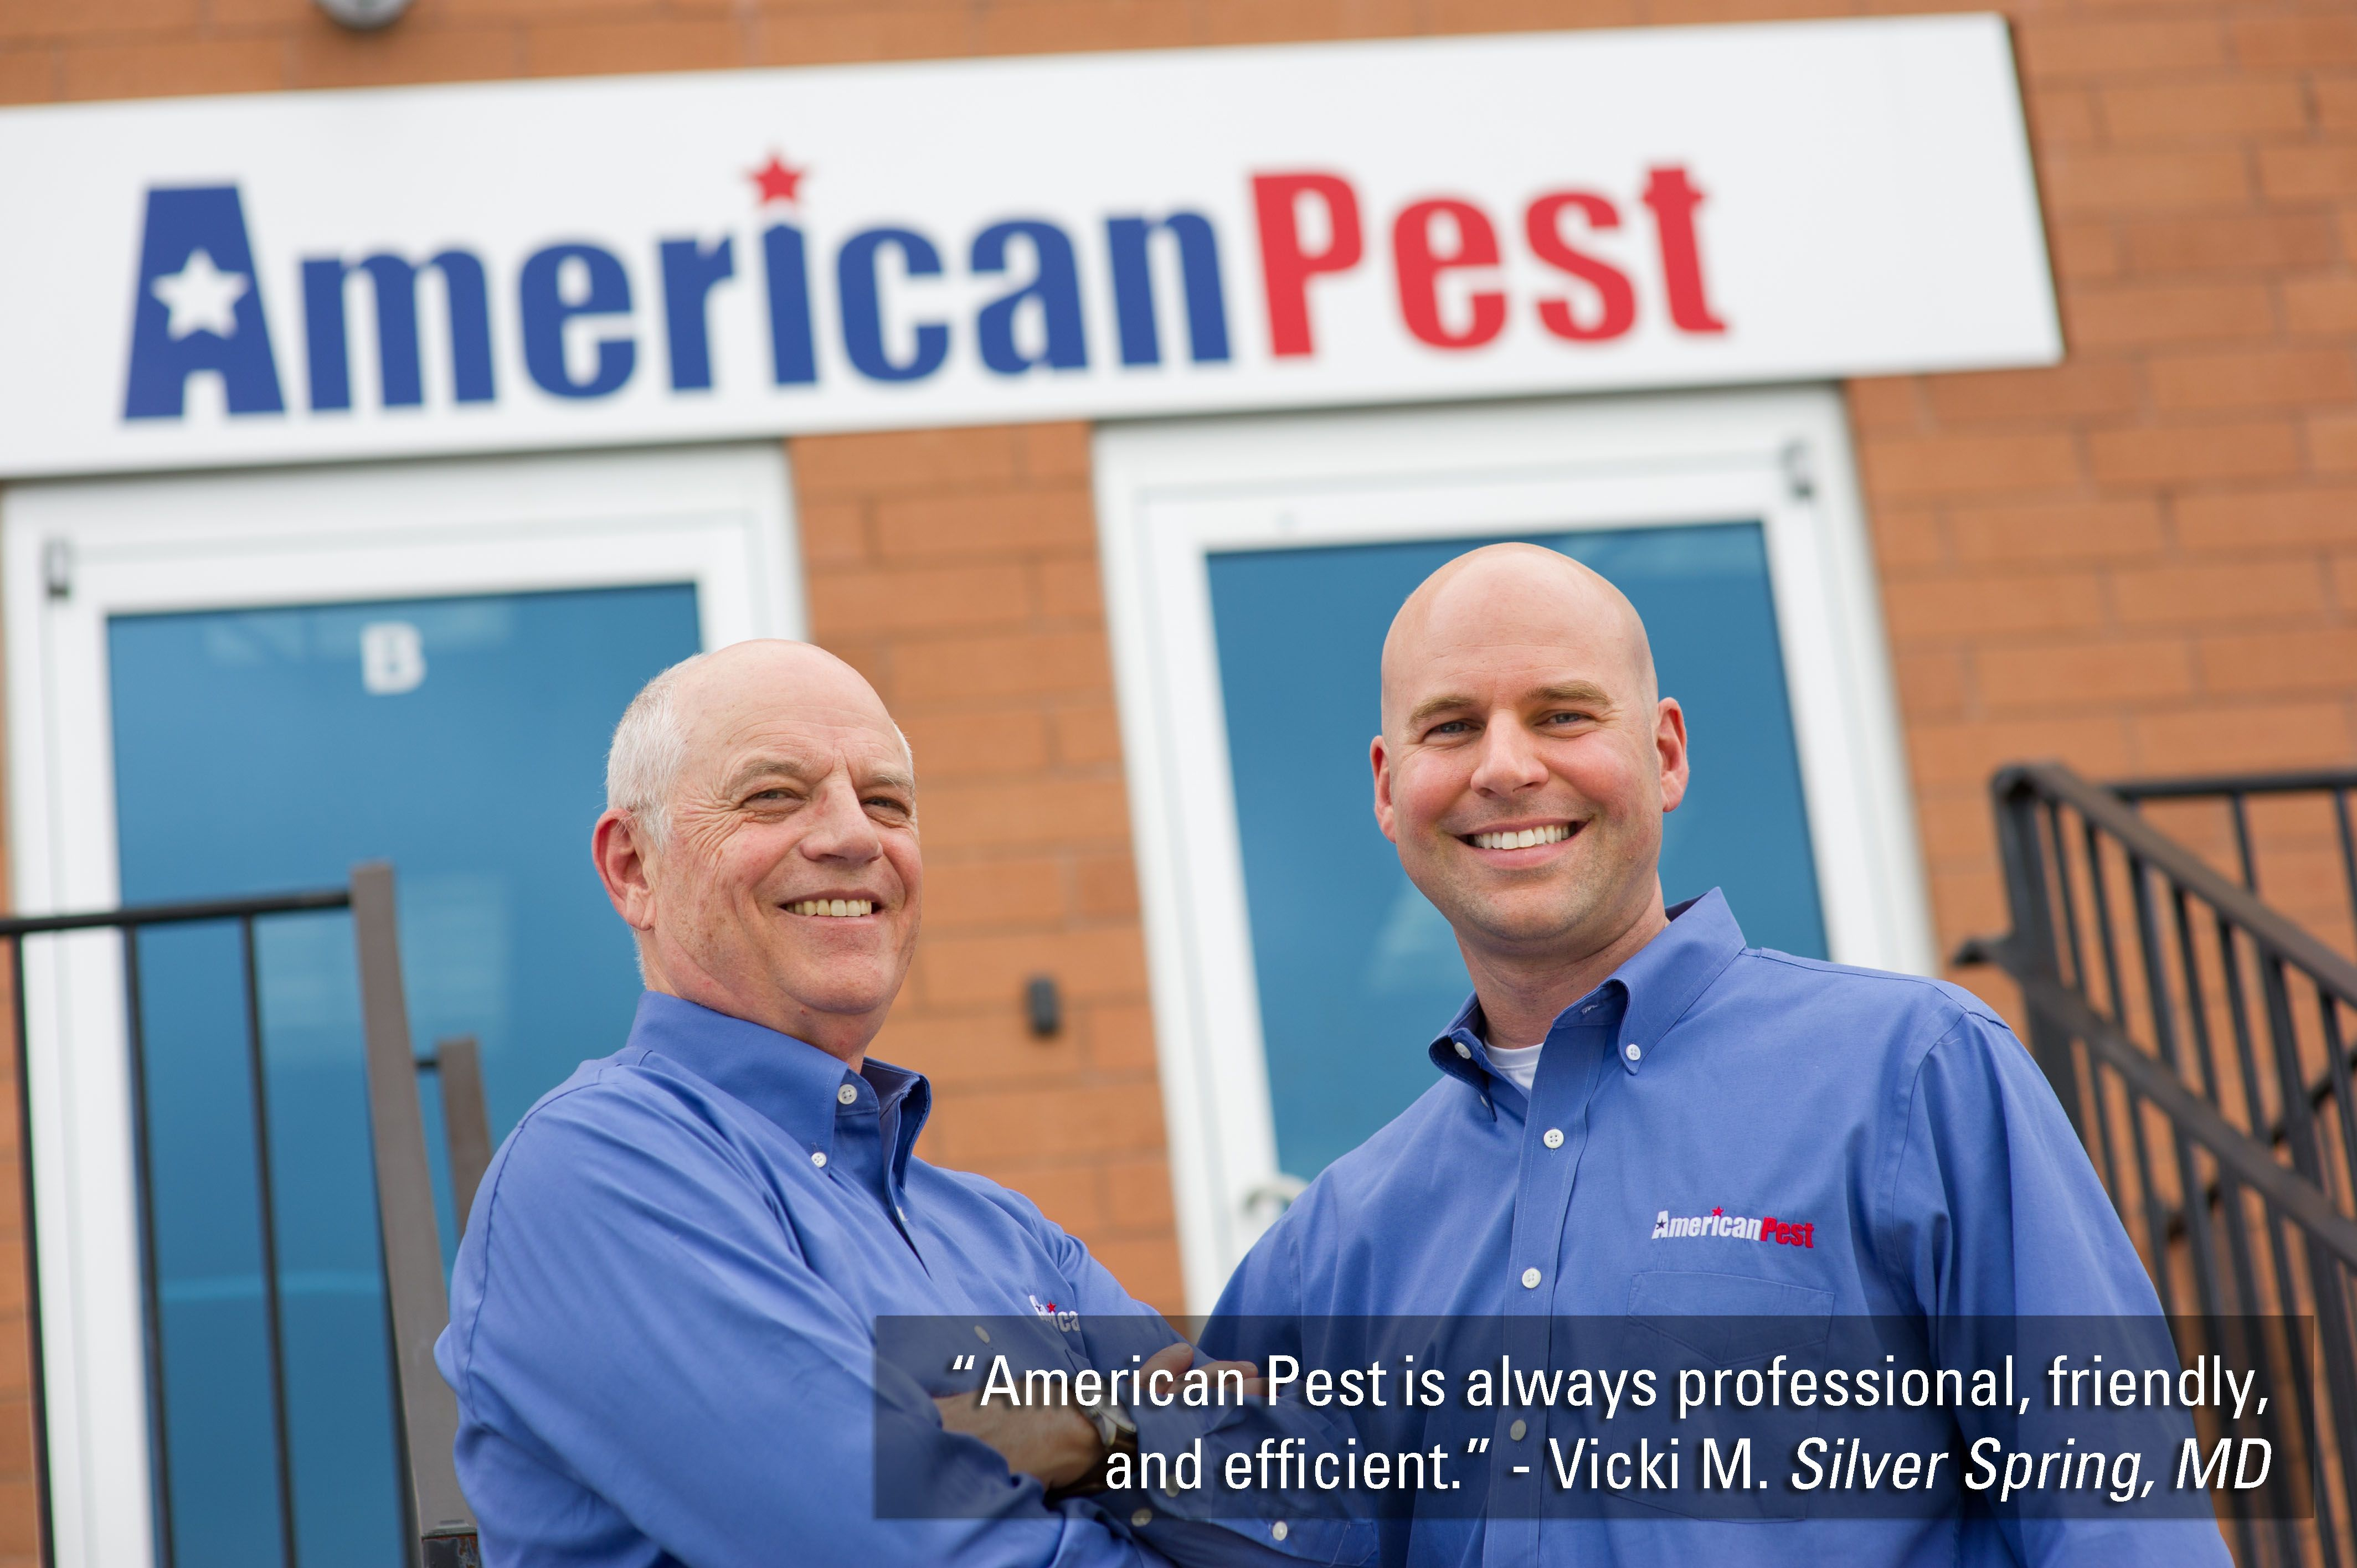 Quotes from actual American Pest Customers. American